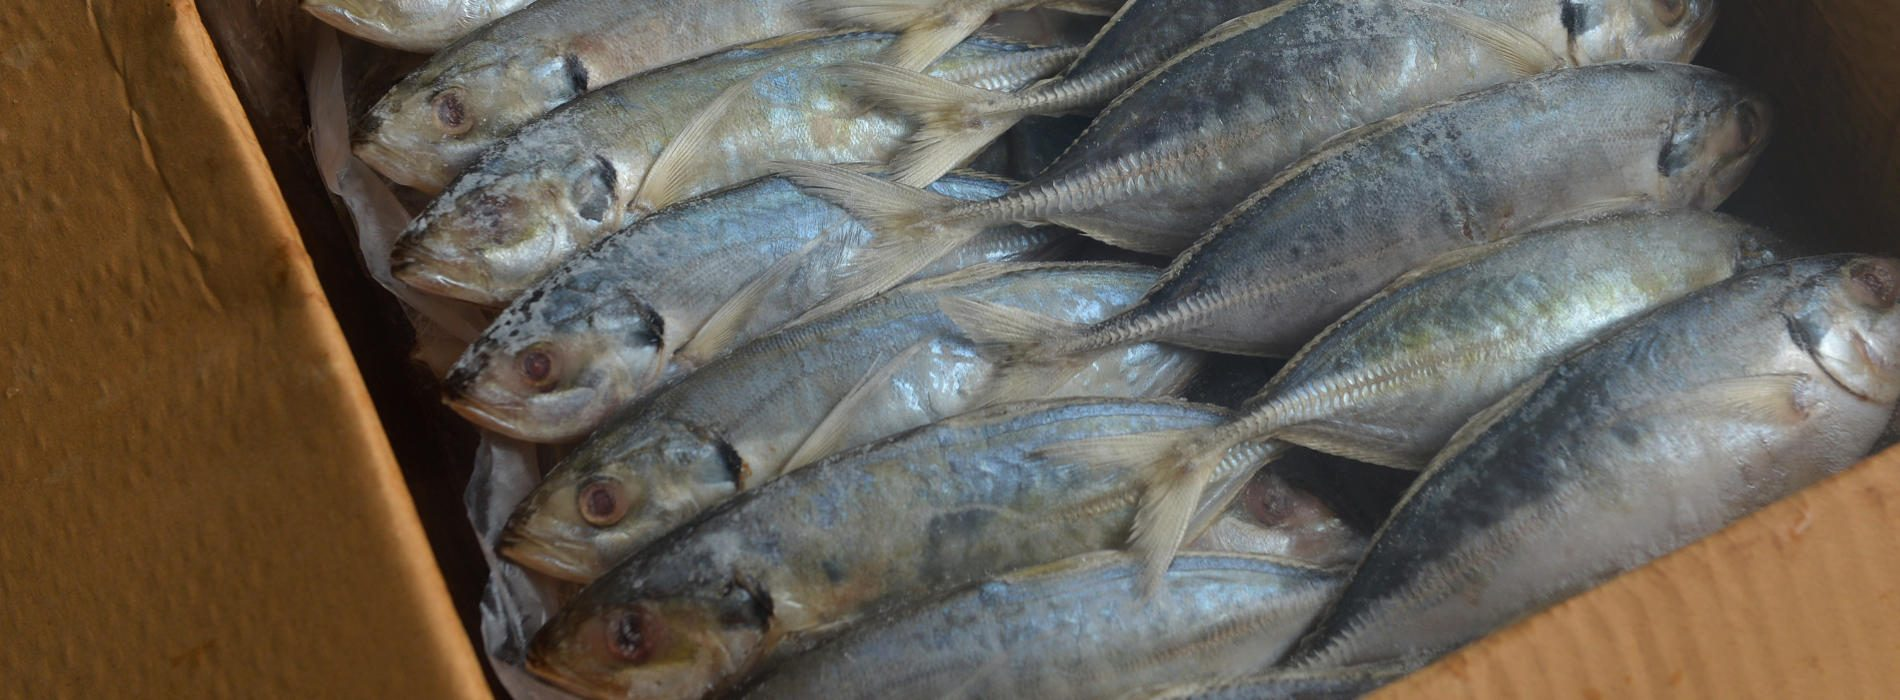 Zambia's Fish Imports Must End, President Says..